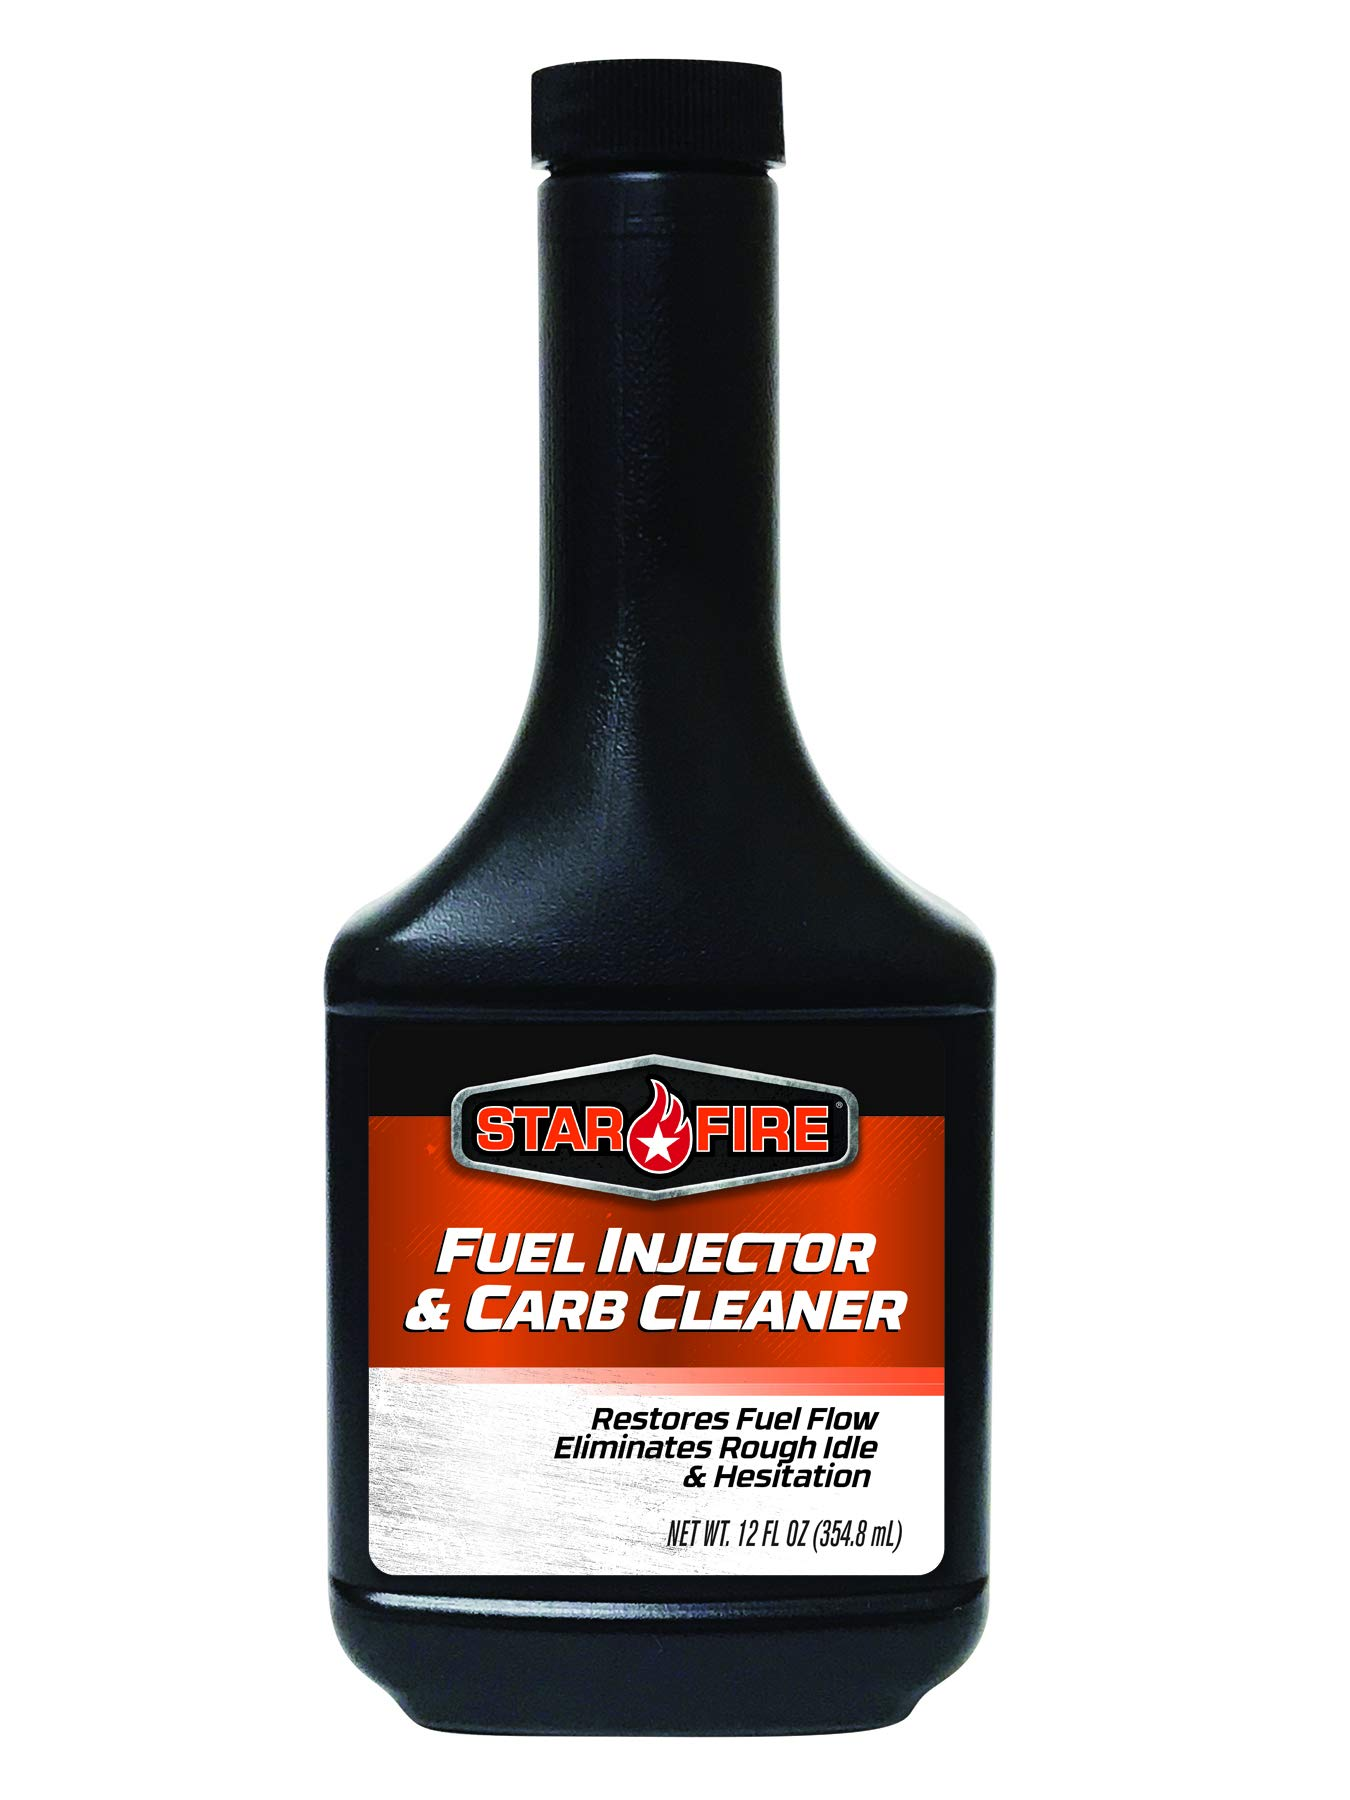 Star Fire Premium Lubricants Fuel Injector & Carb Cleaner 12/12OZ by Star Fire Premium Lubricants